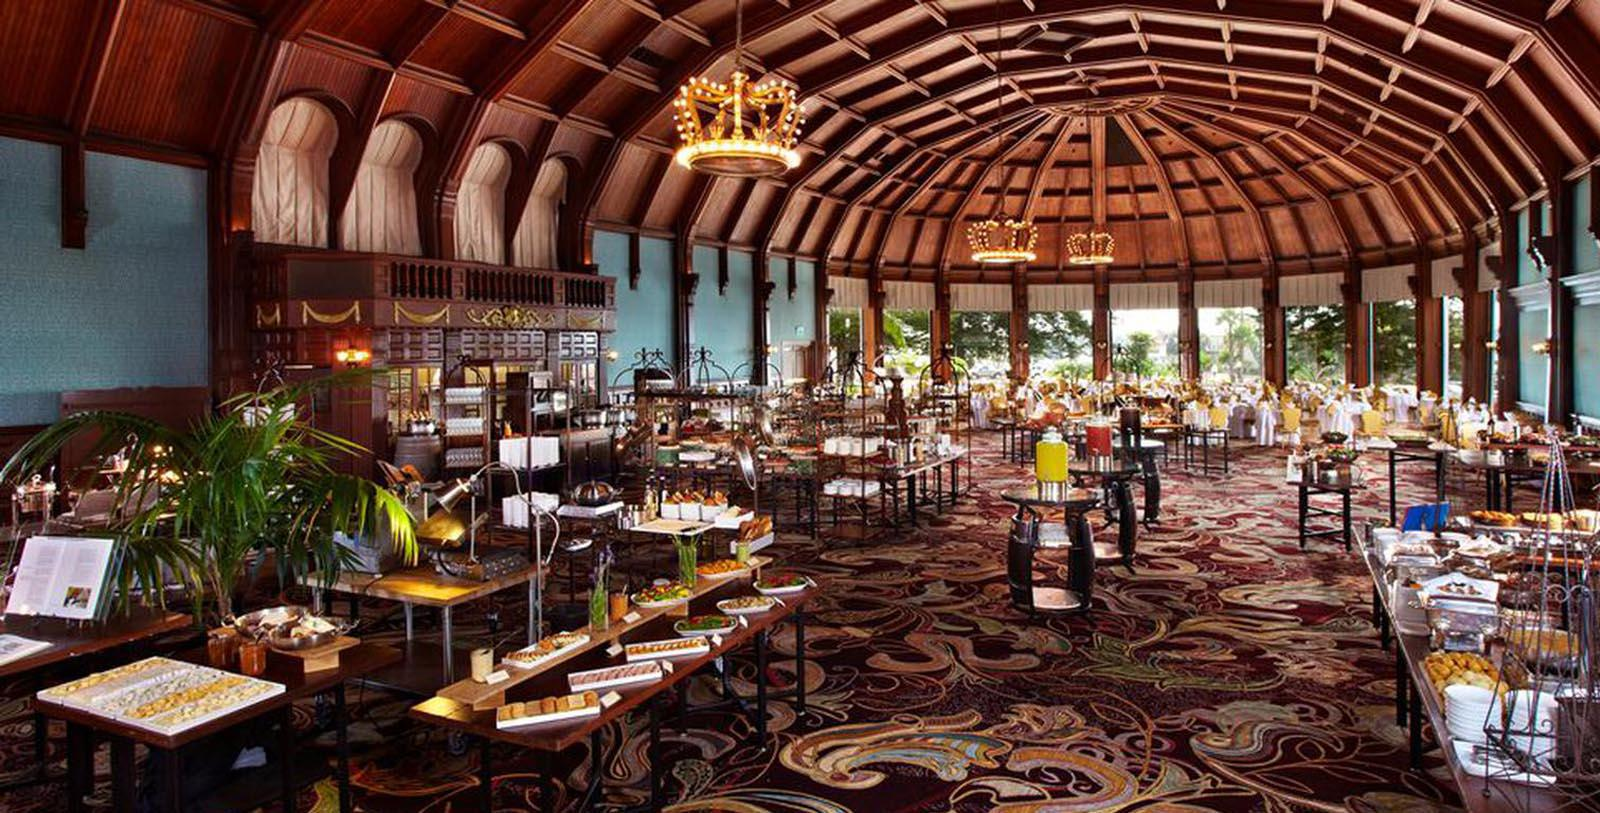 Image of Crown Room at Hotel del Coronado in Coronado, California, 1886, Member of Historic Hotels of America, Explore